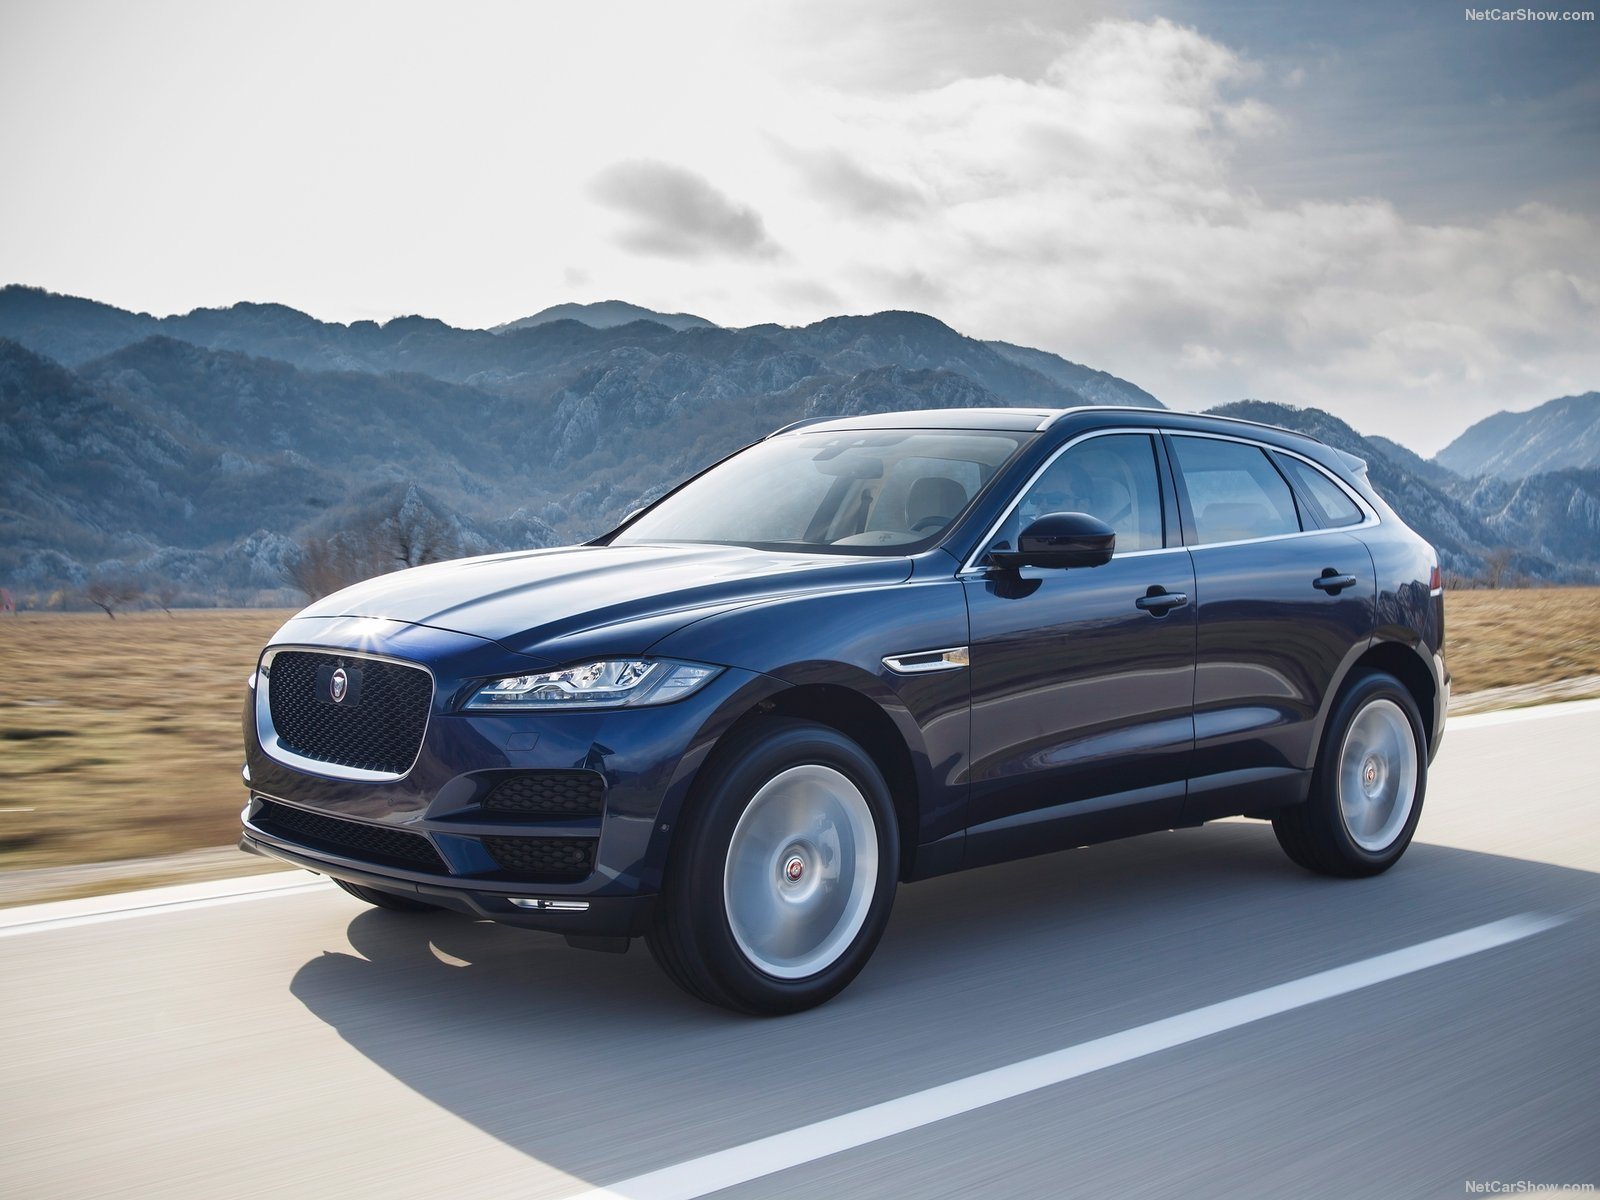 jaguar f pace cars suv 2016 wallpaper 1600x1200 934429 wallpaperup. Black Bedroom Furniture Sets. Home Design Ideas